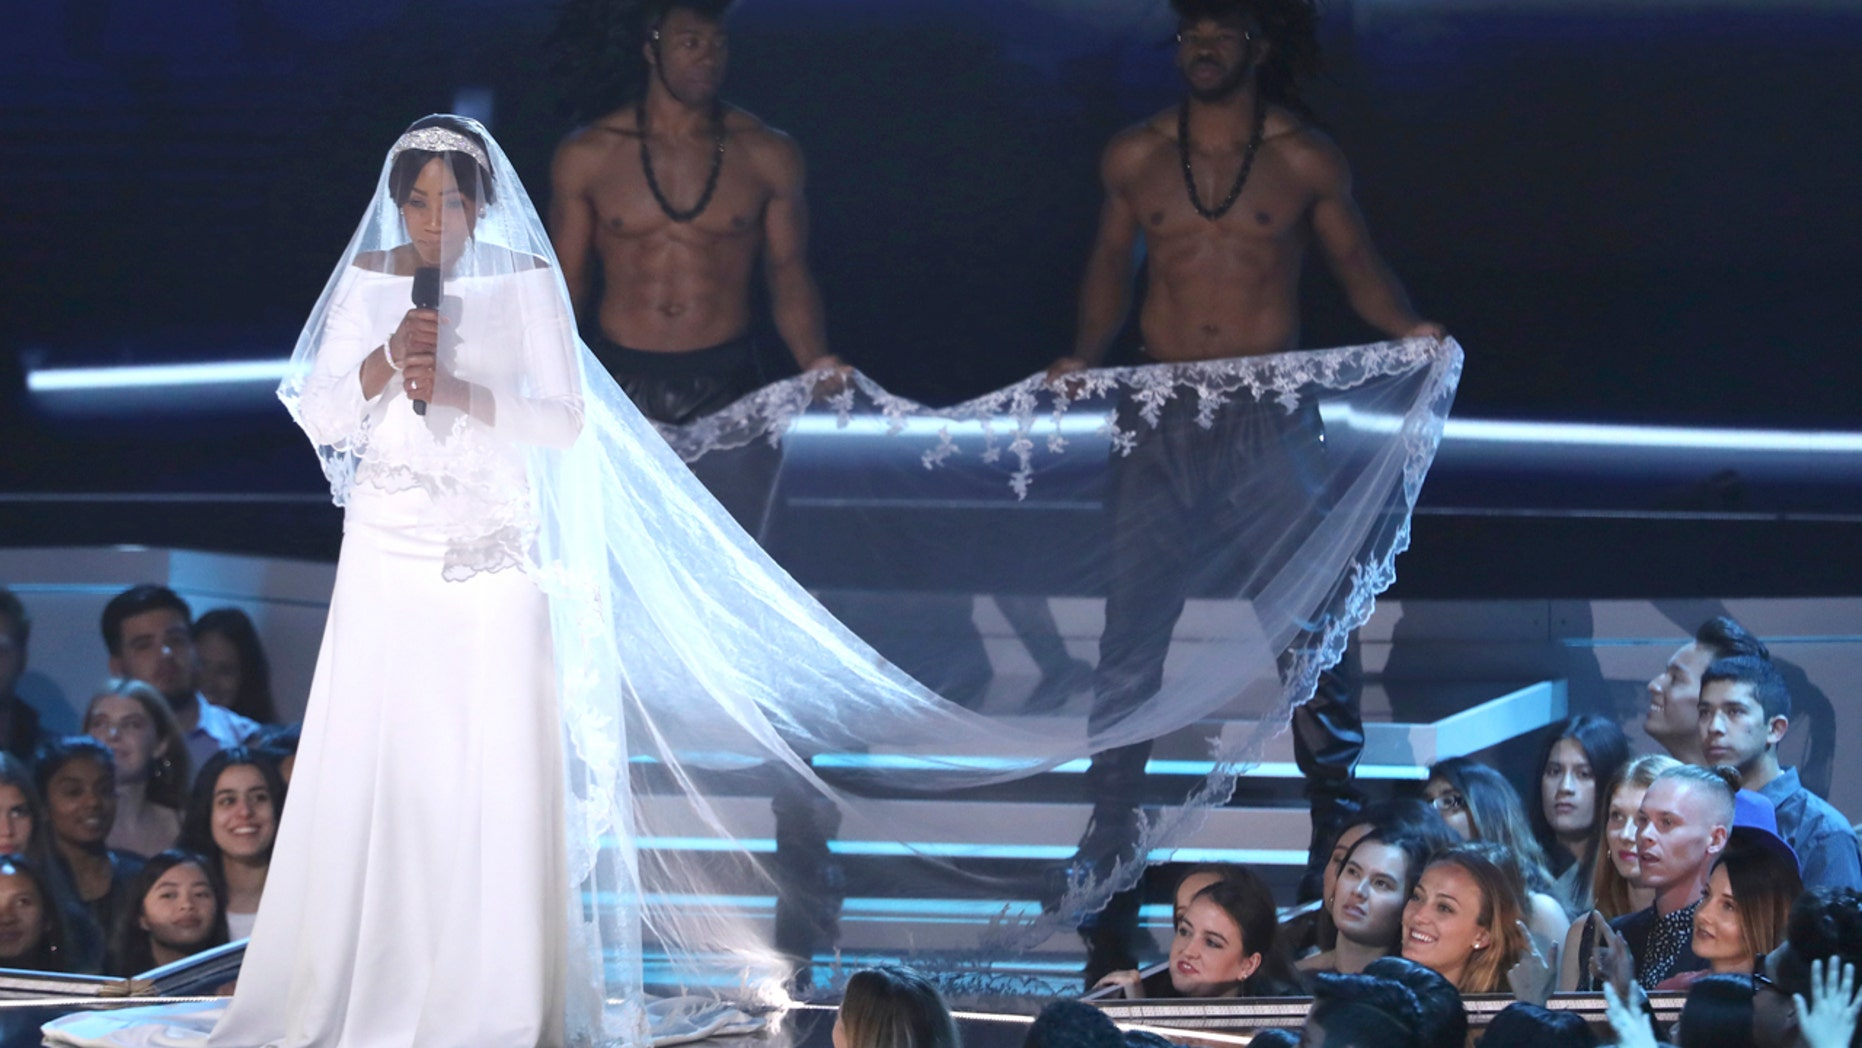 Tiffany Haddish appears on stage at the MTV Movie and TV Awards wearing a full on replica of Meghan Markle's royal wedding gown.